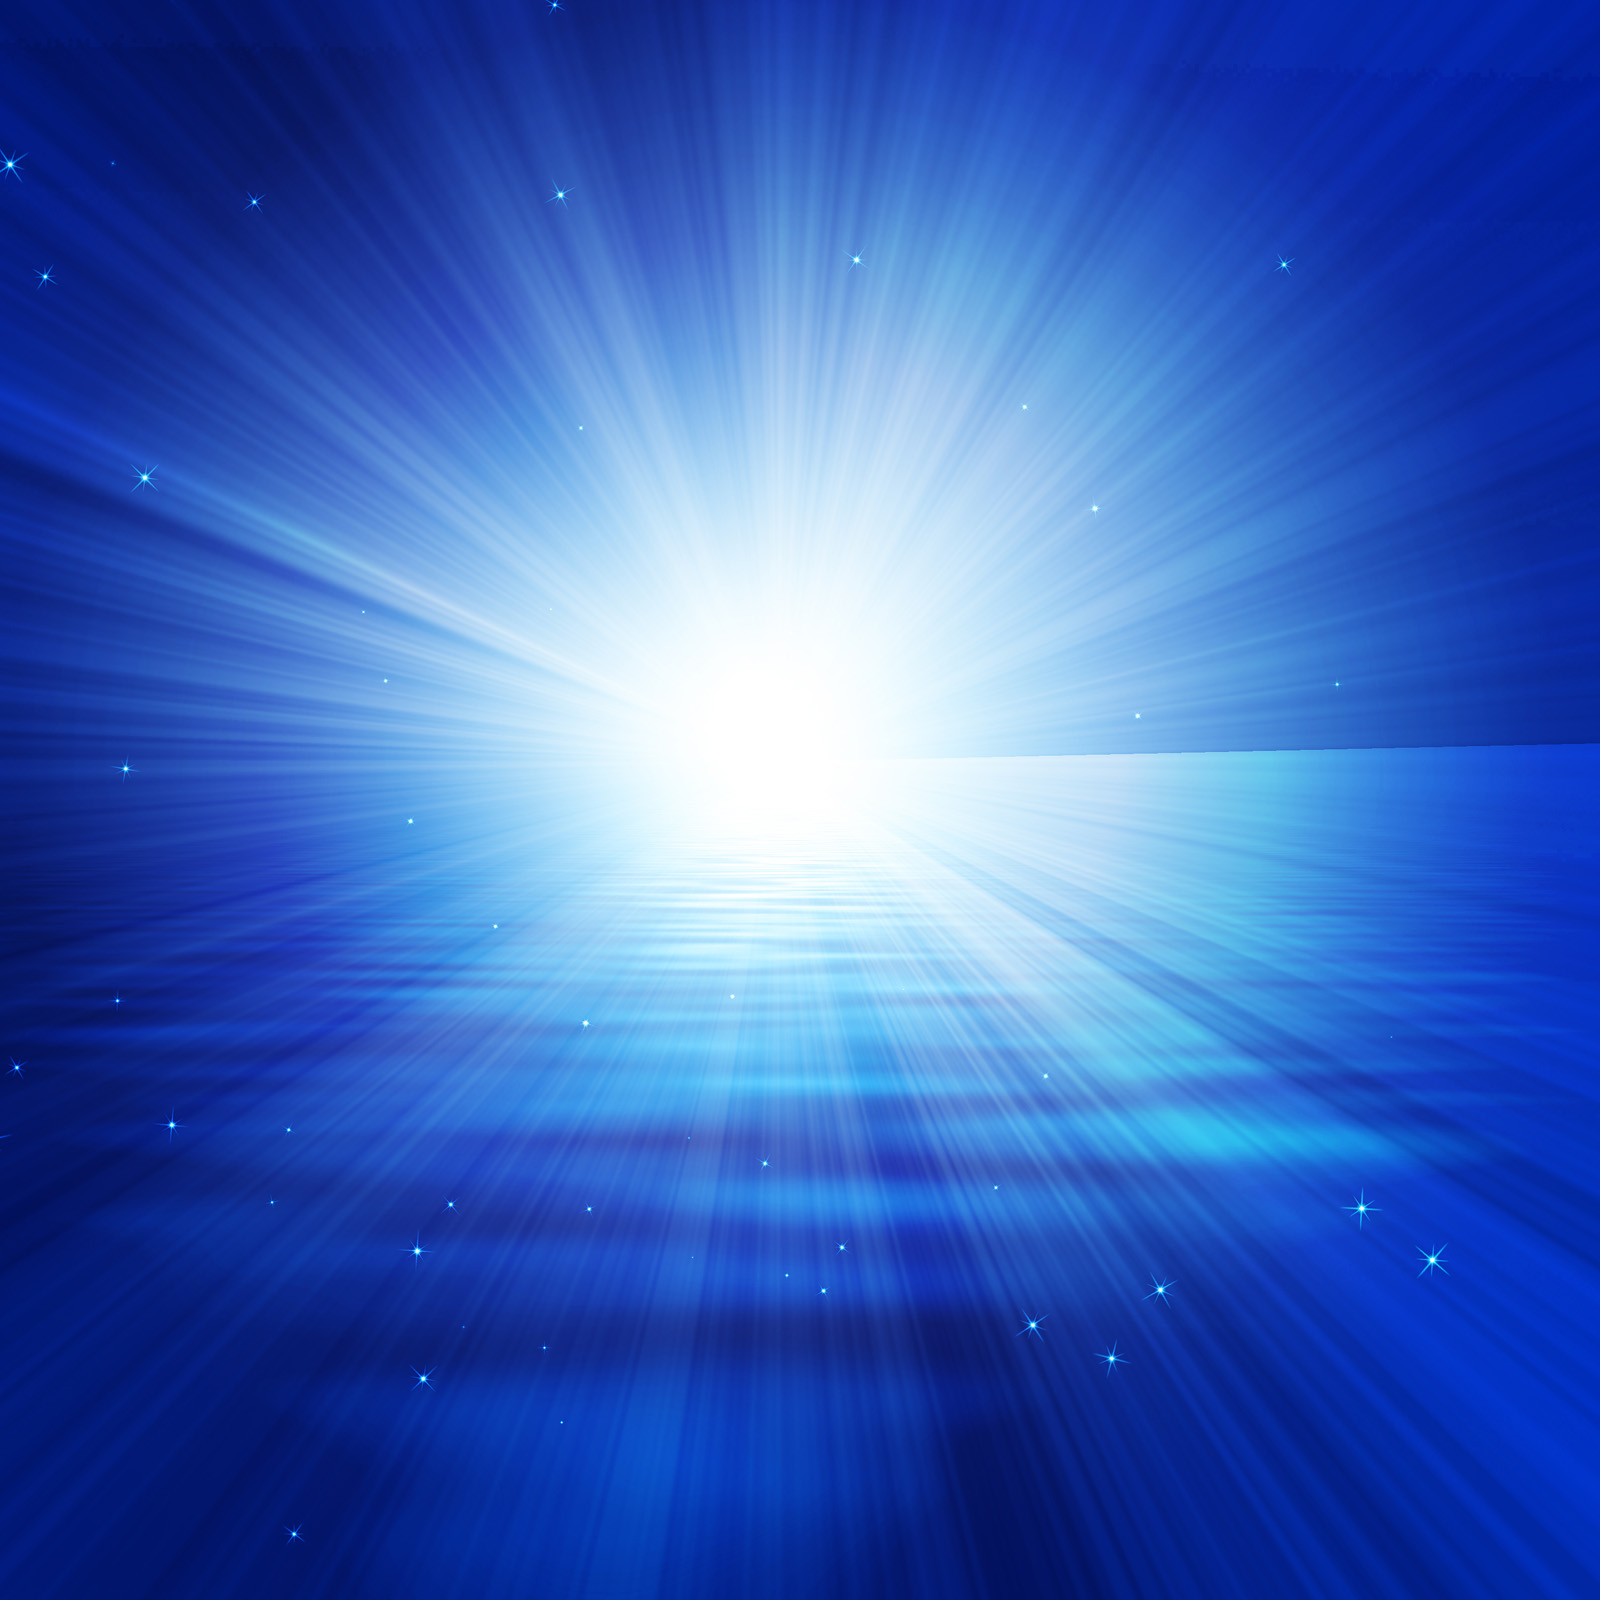 Blue background material 25795